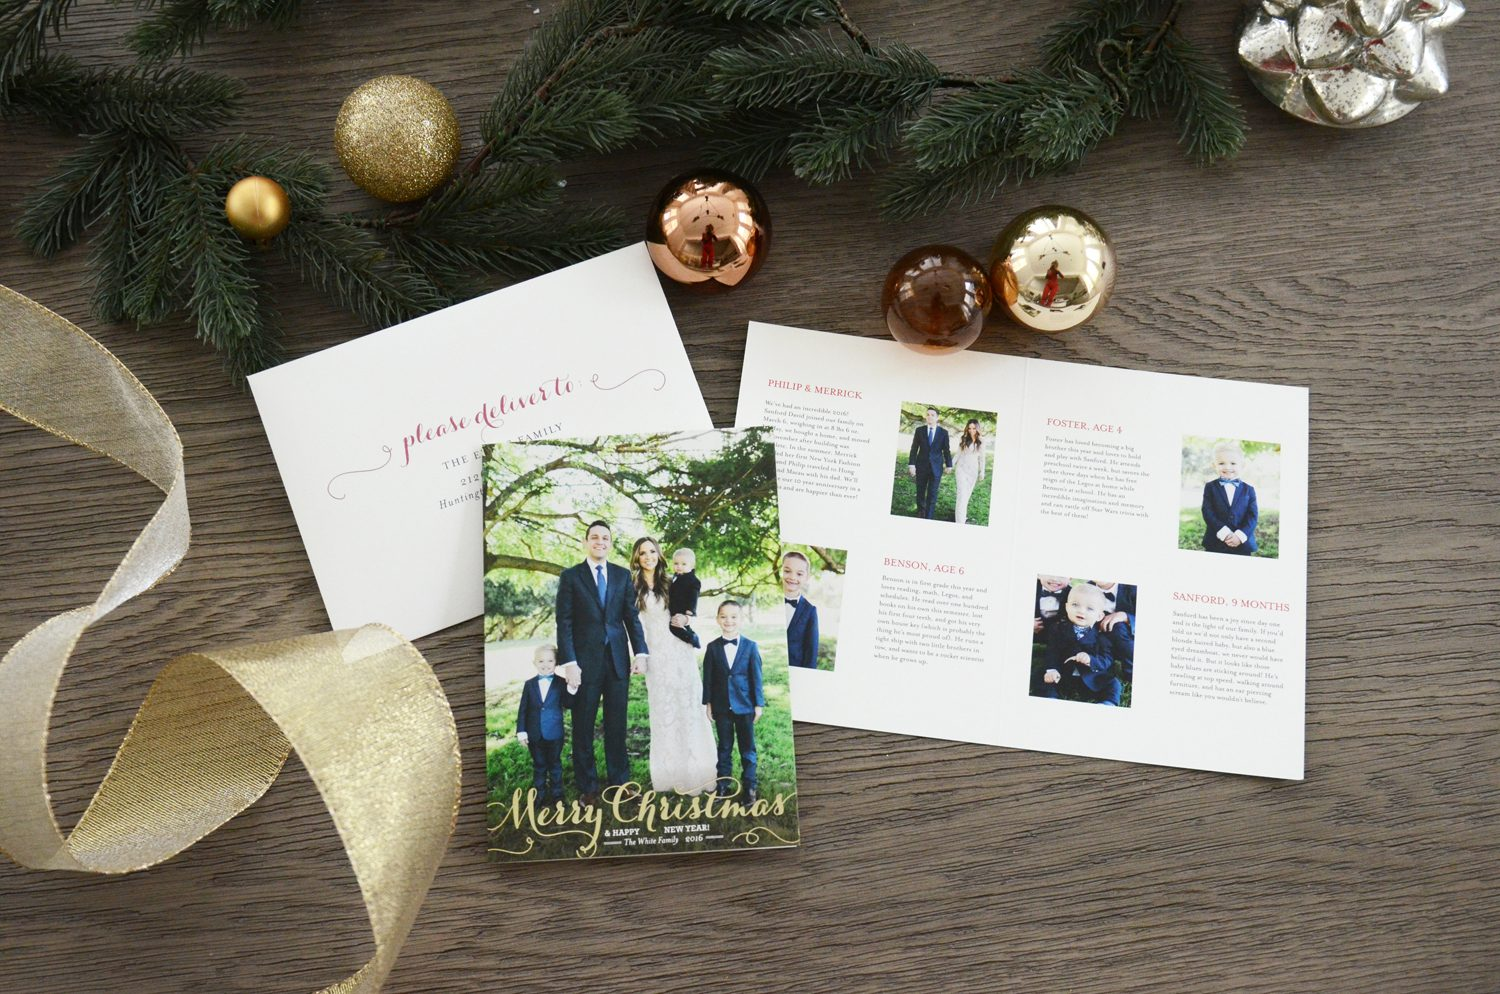 Merrick's Art Minted Holiday Cards